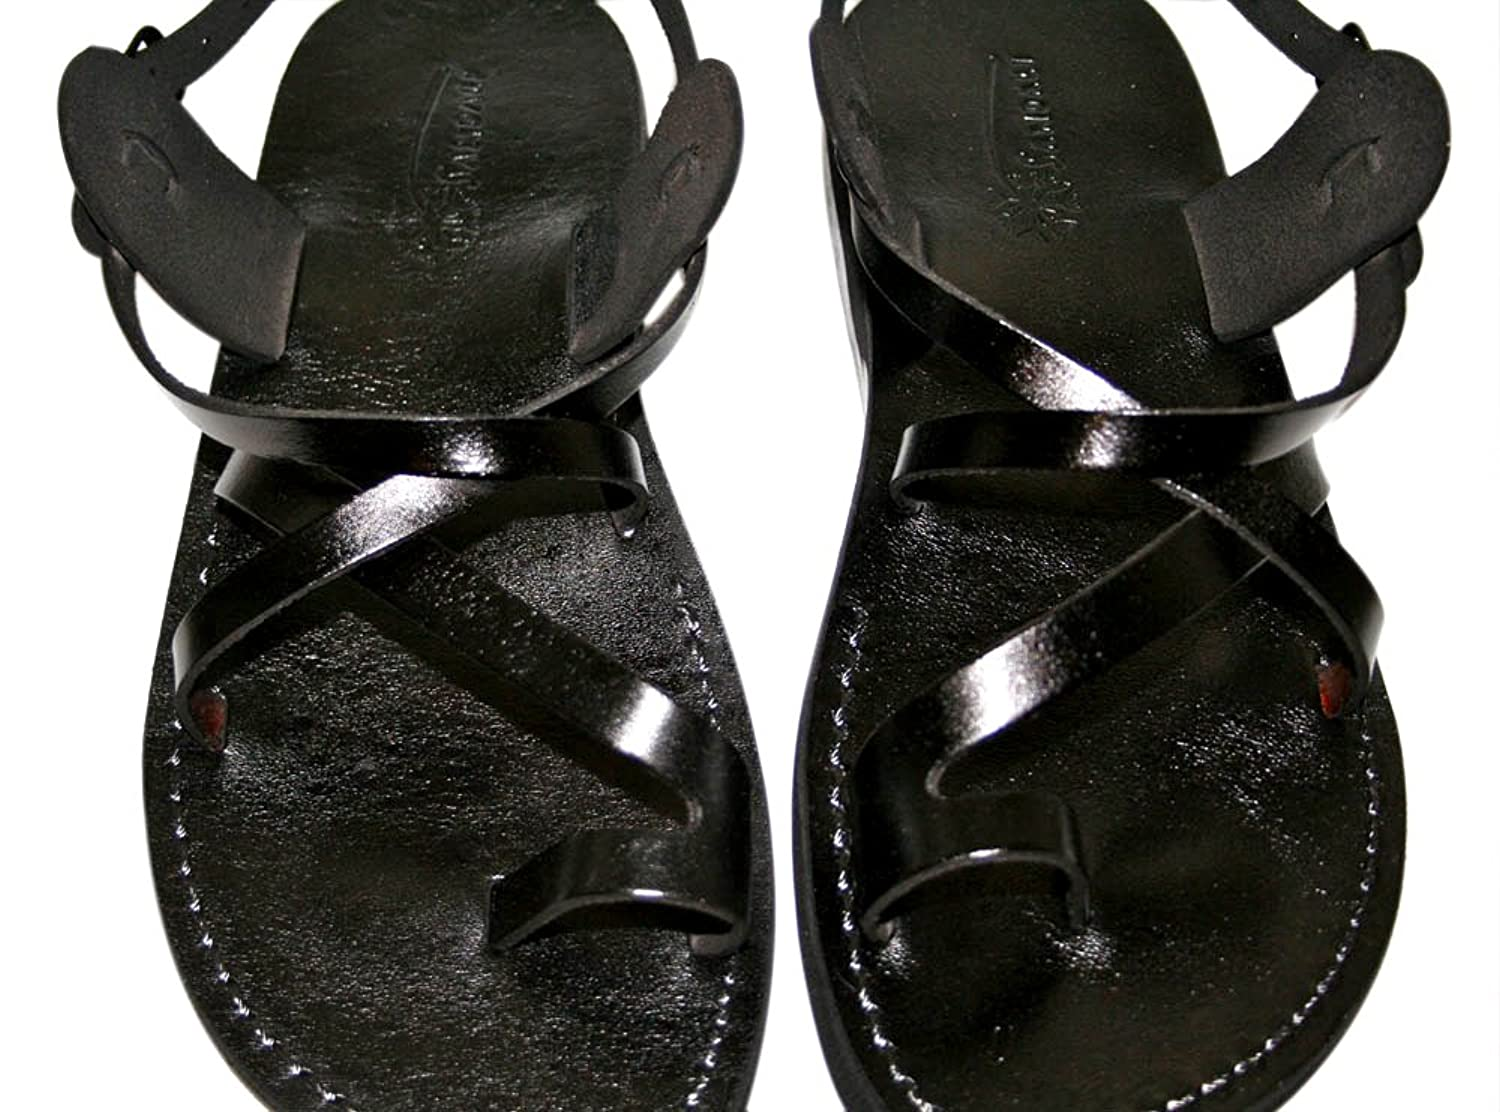 Black Roxy Unisex Leather Sandals / Genuine Handmade Leather Holy Land Biblical Jesus Sandals